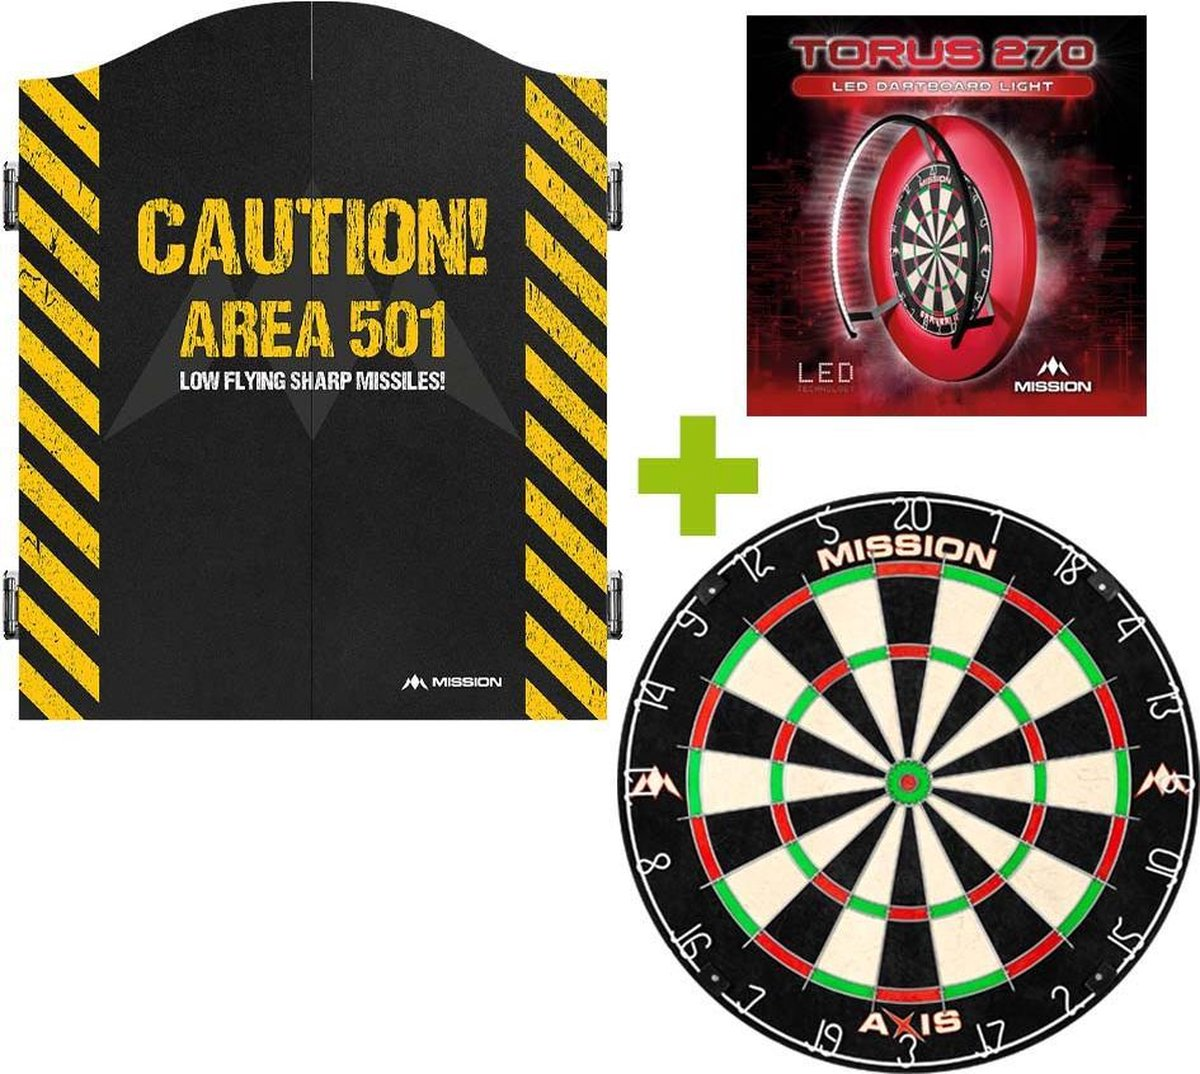 Mission Deluxe Caution 501 Dartkabinet + Mission Axis +